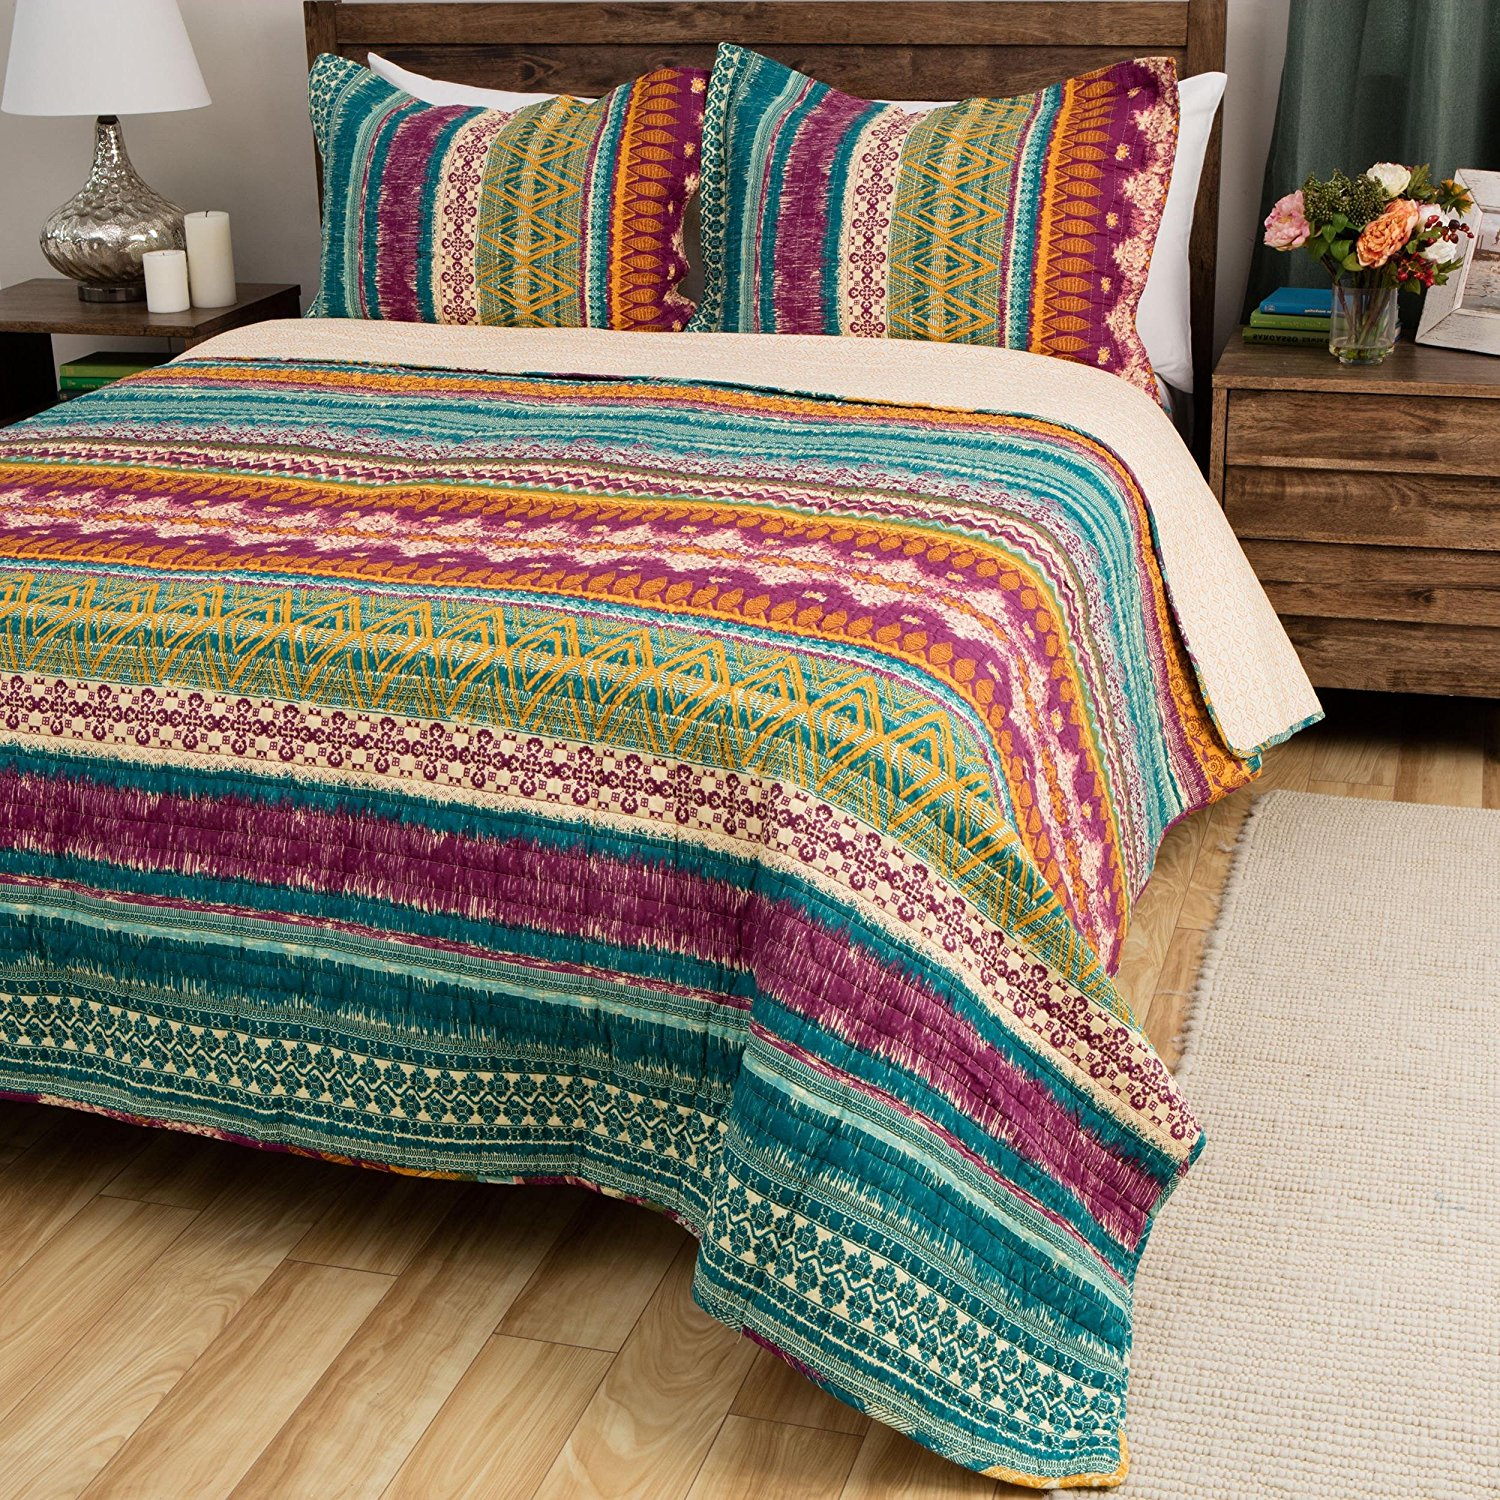 3 Piece Beautiful Colorful Blue Purple Pink Green Full Queen Quilt Set, Rainbow Striped Bohemian Themed Reversible Bedding Cottage Cabin Tie Dye Aqua Lavender Turquoise Gold Boho Vivid Bright, Cotton